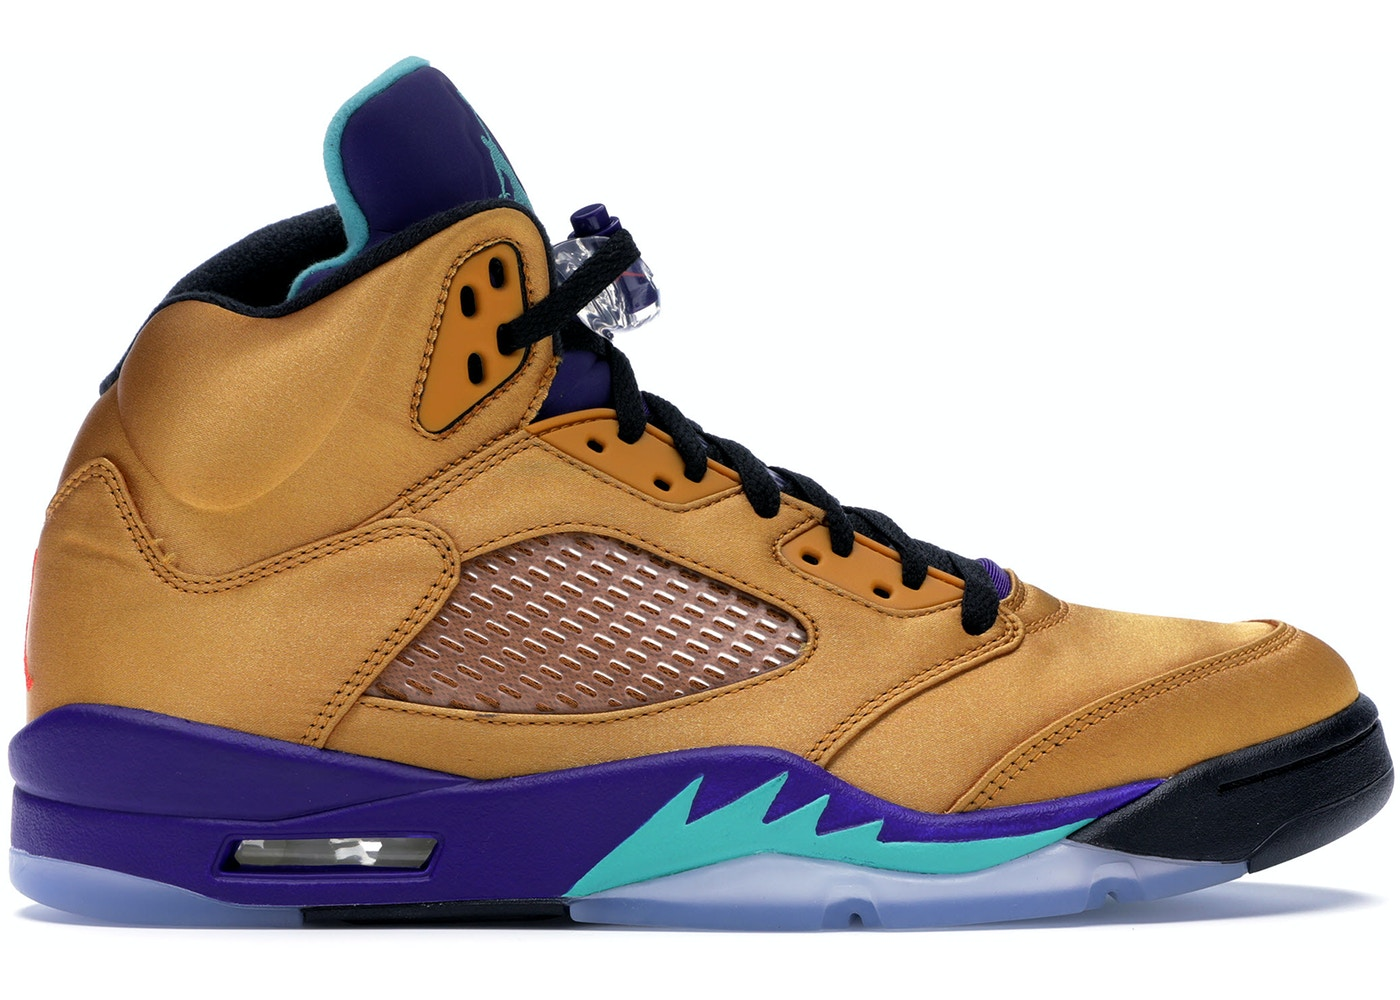 new arrival 1d08b 2be56 Jordan 5 Retro Fresh Prince (F&F)